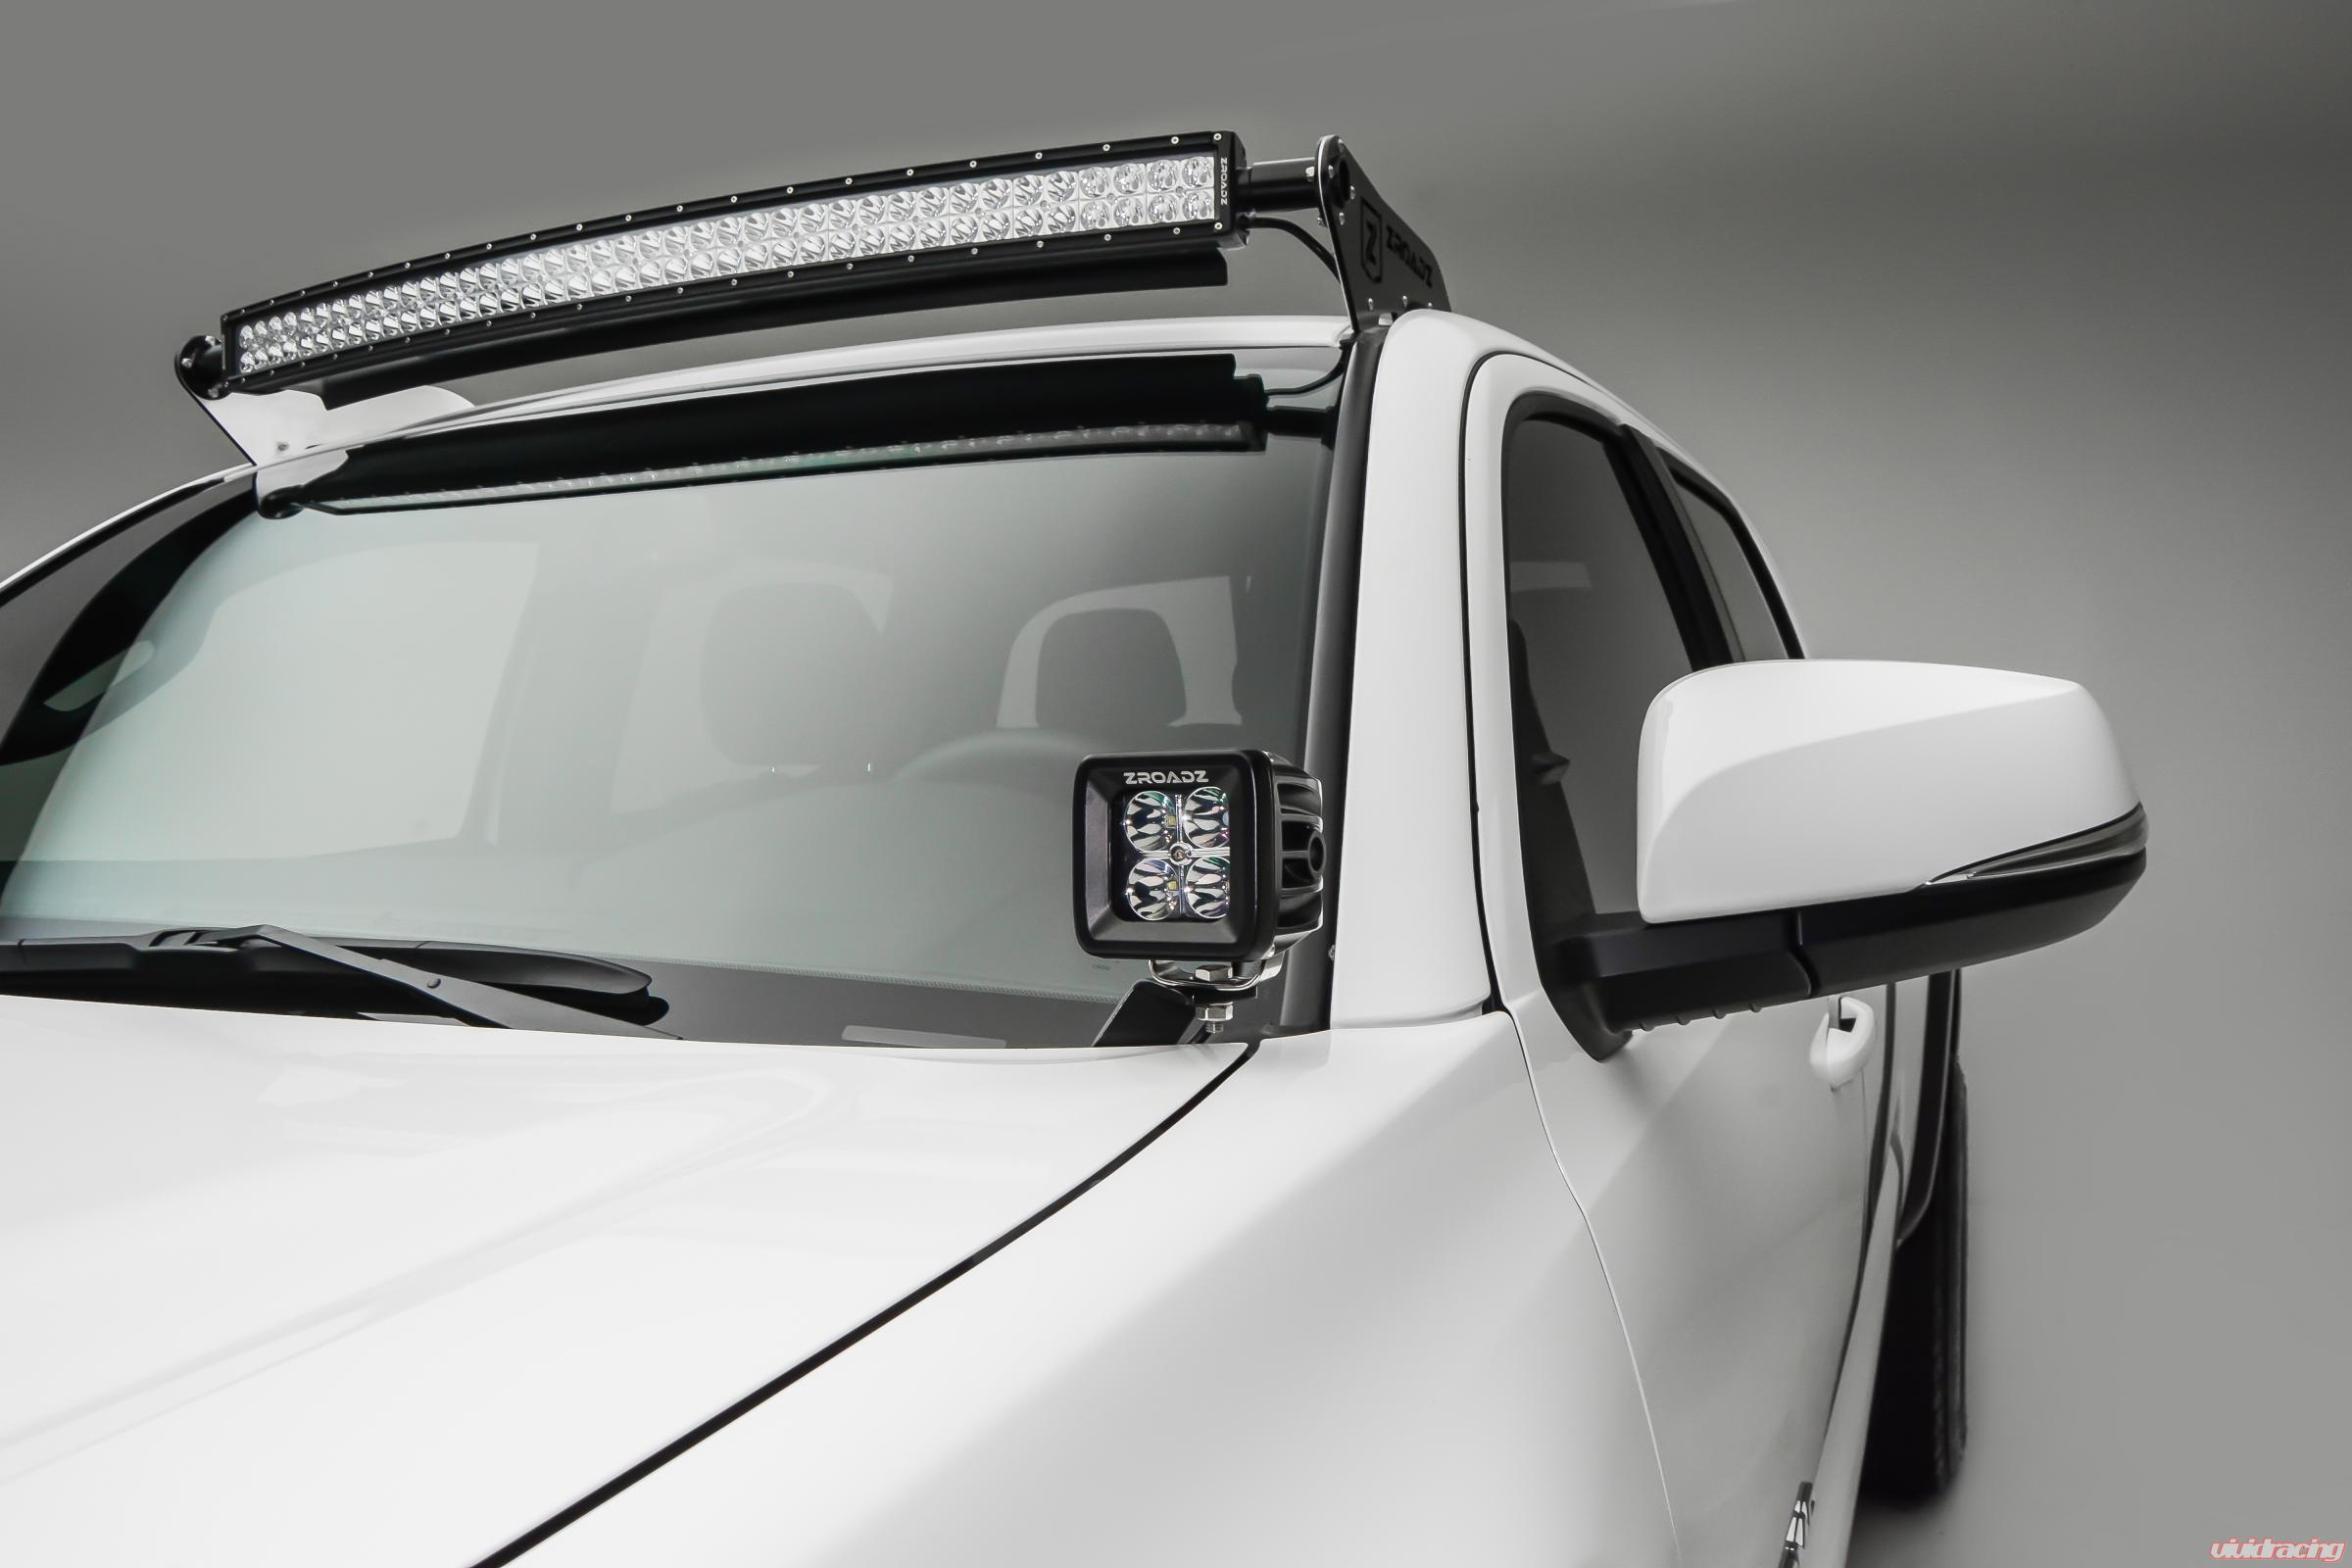 Front Roof LED Light Bar Mount Kit 2005-2017 Tacoma W/40 Inch Curved